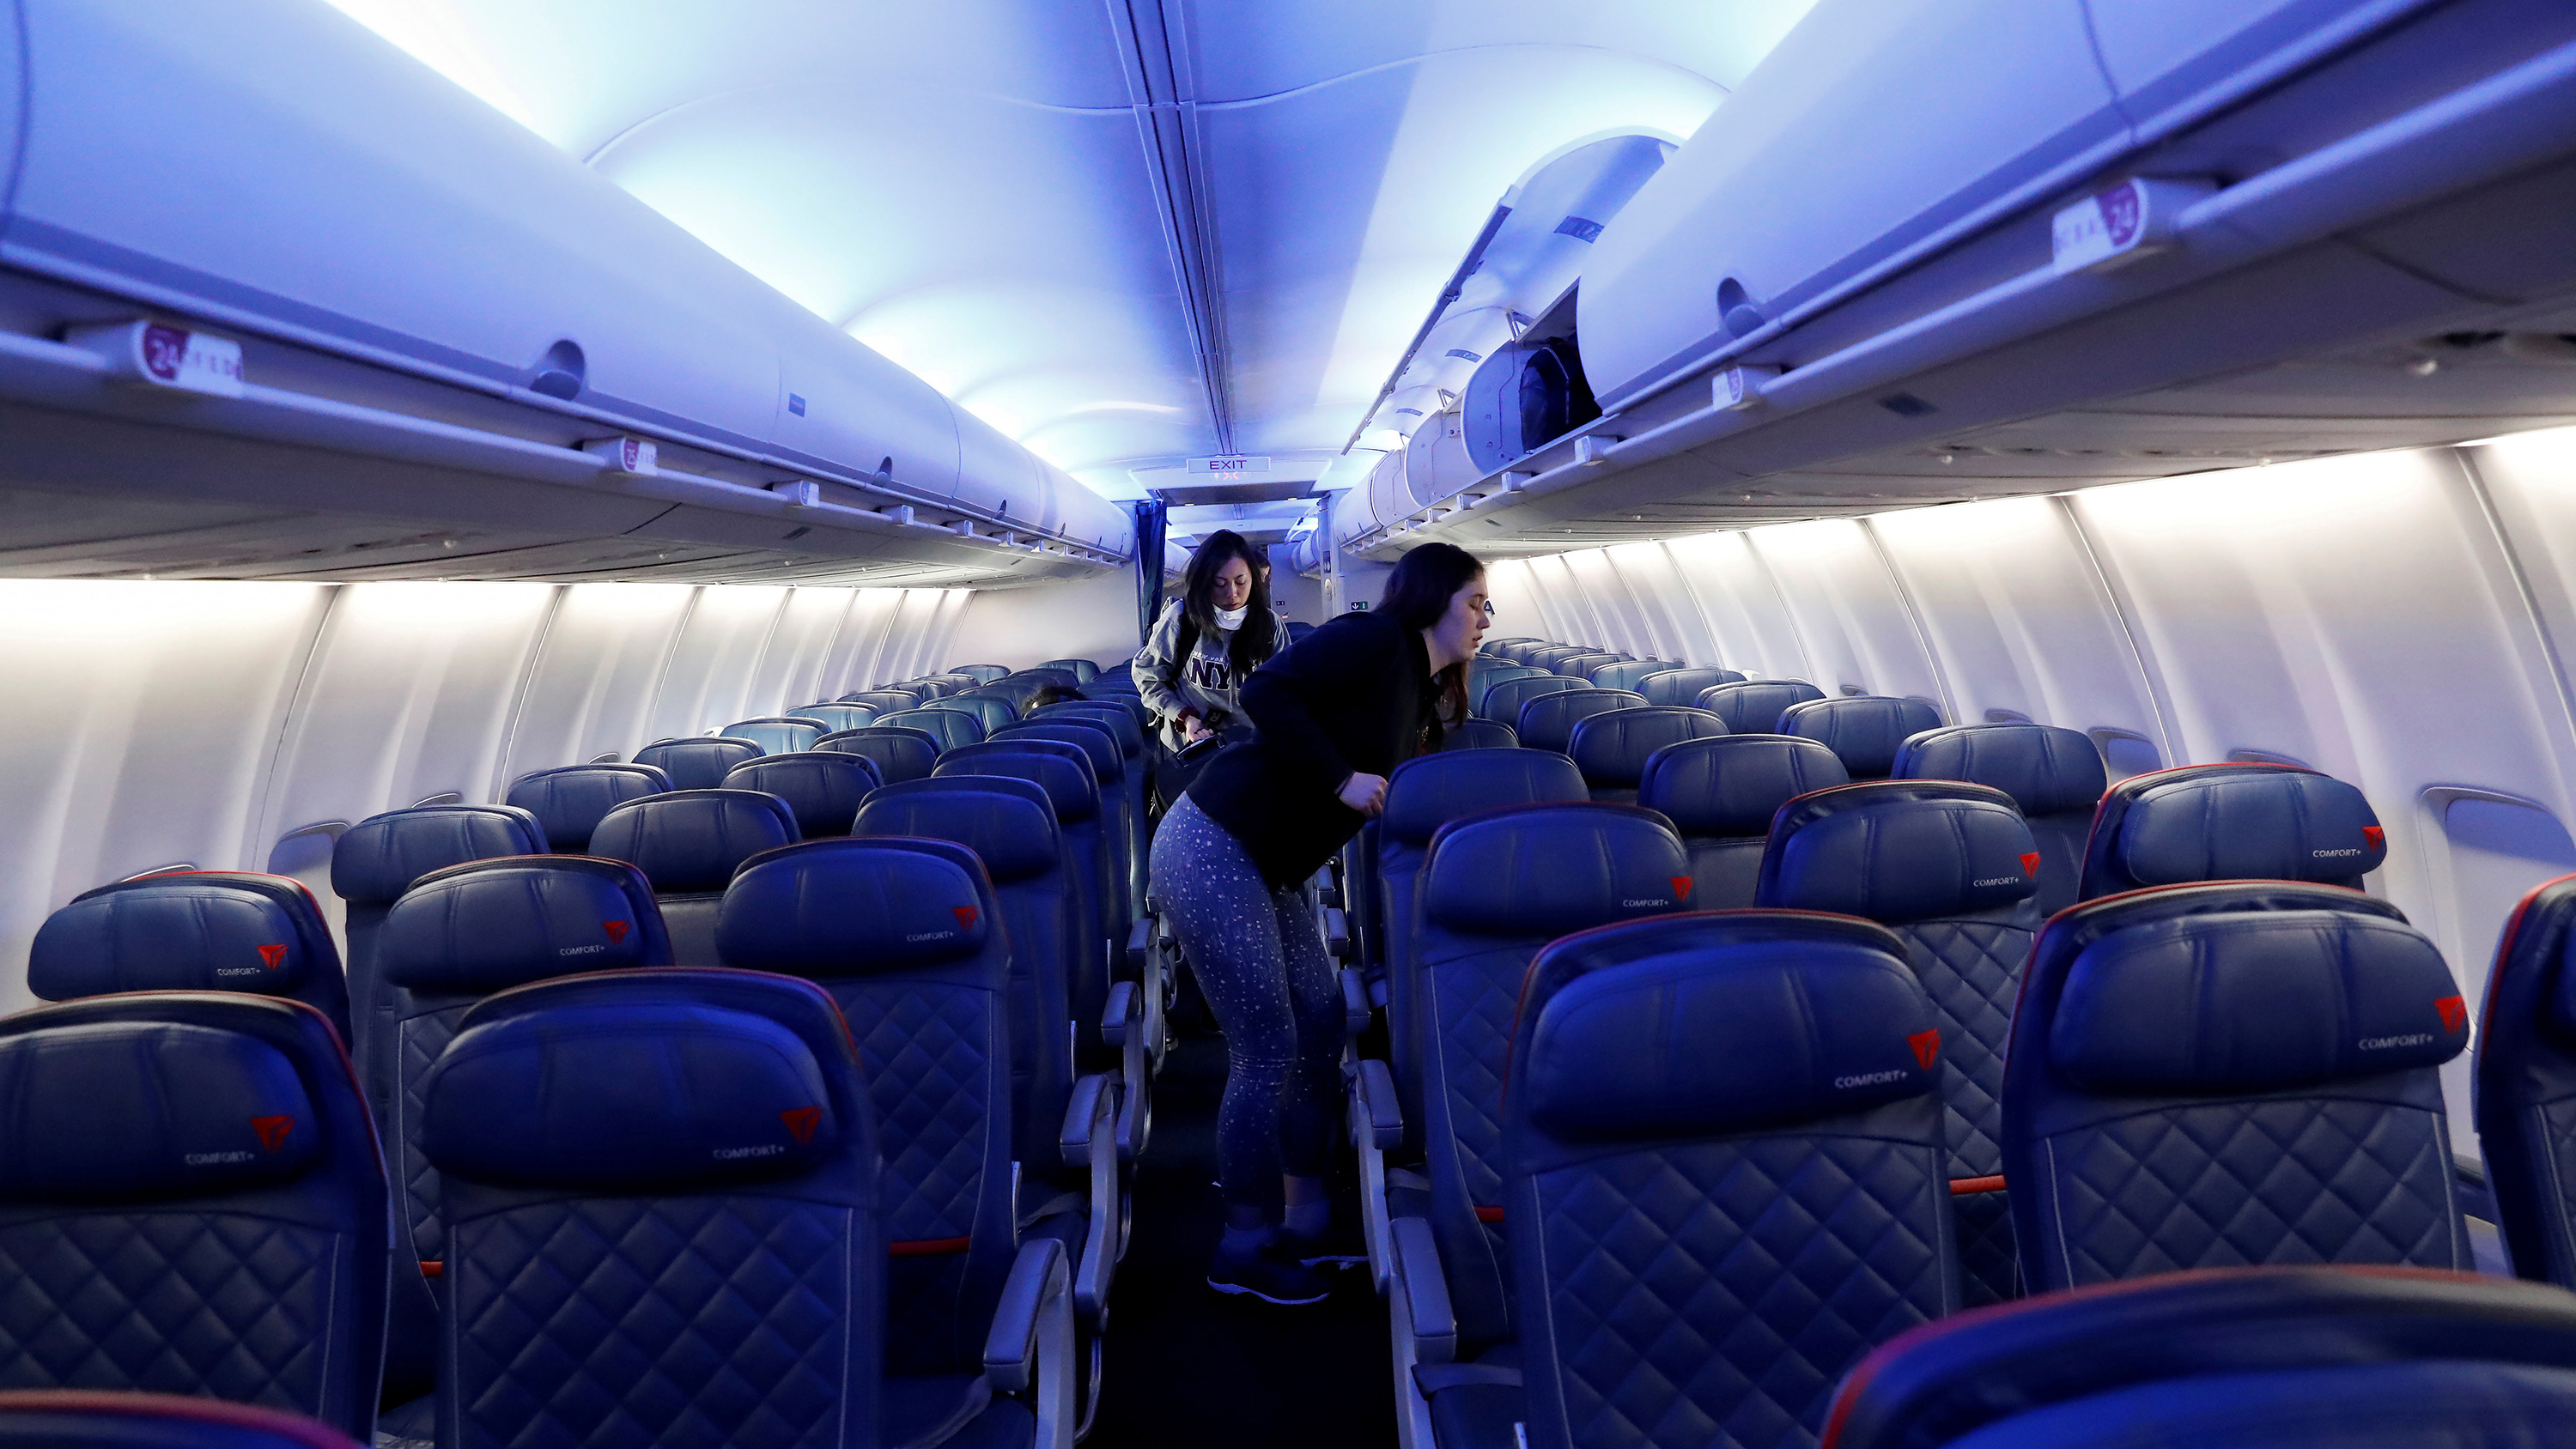 The photo shows a large jet passenger plane nearly empty of people.